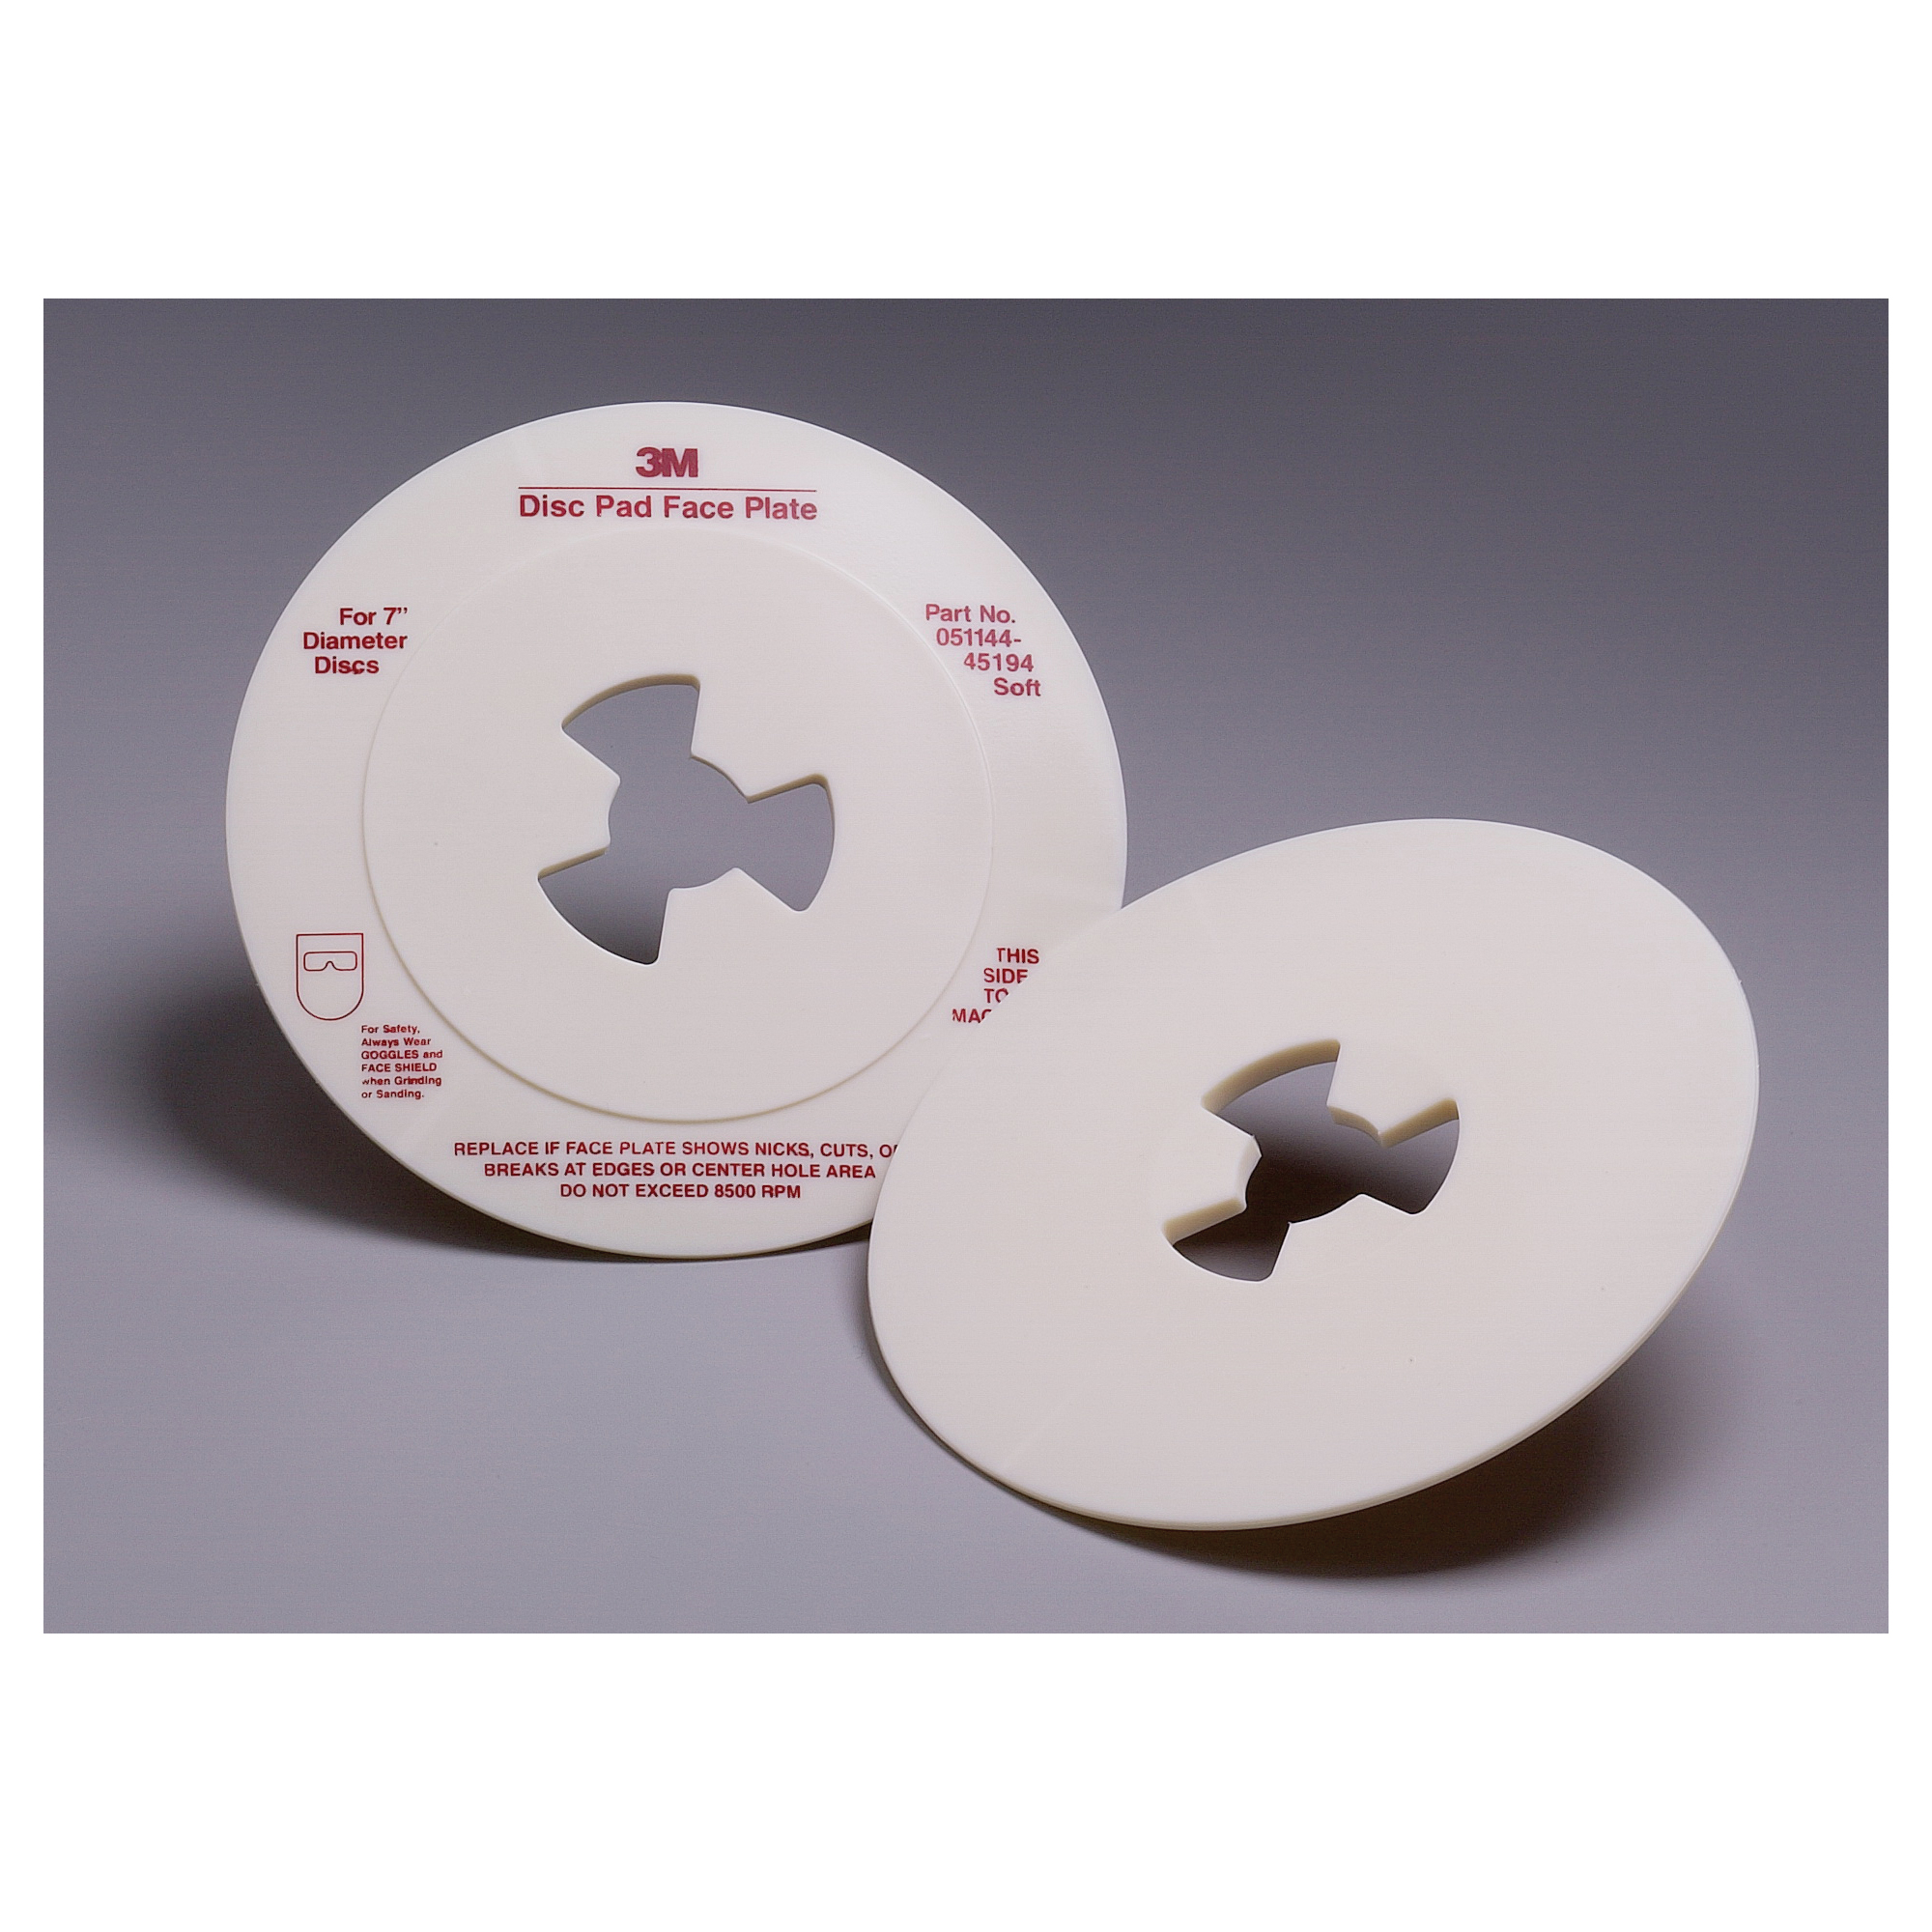 3M™ 051144-45194 Smooth Soft Density Disc Pad Face Plate, 7 in, For Use With 3M™ Disc Pad Hub, Right Angle Grinder and Rotary Sander